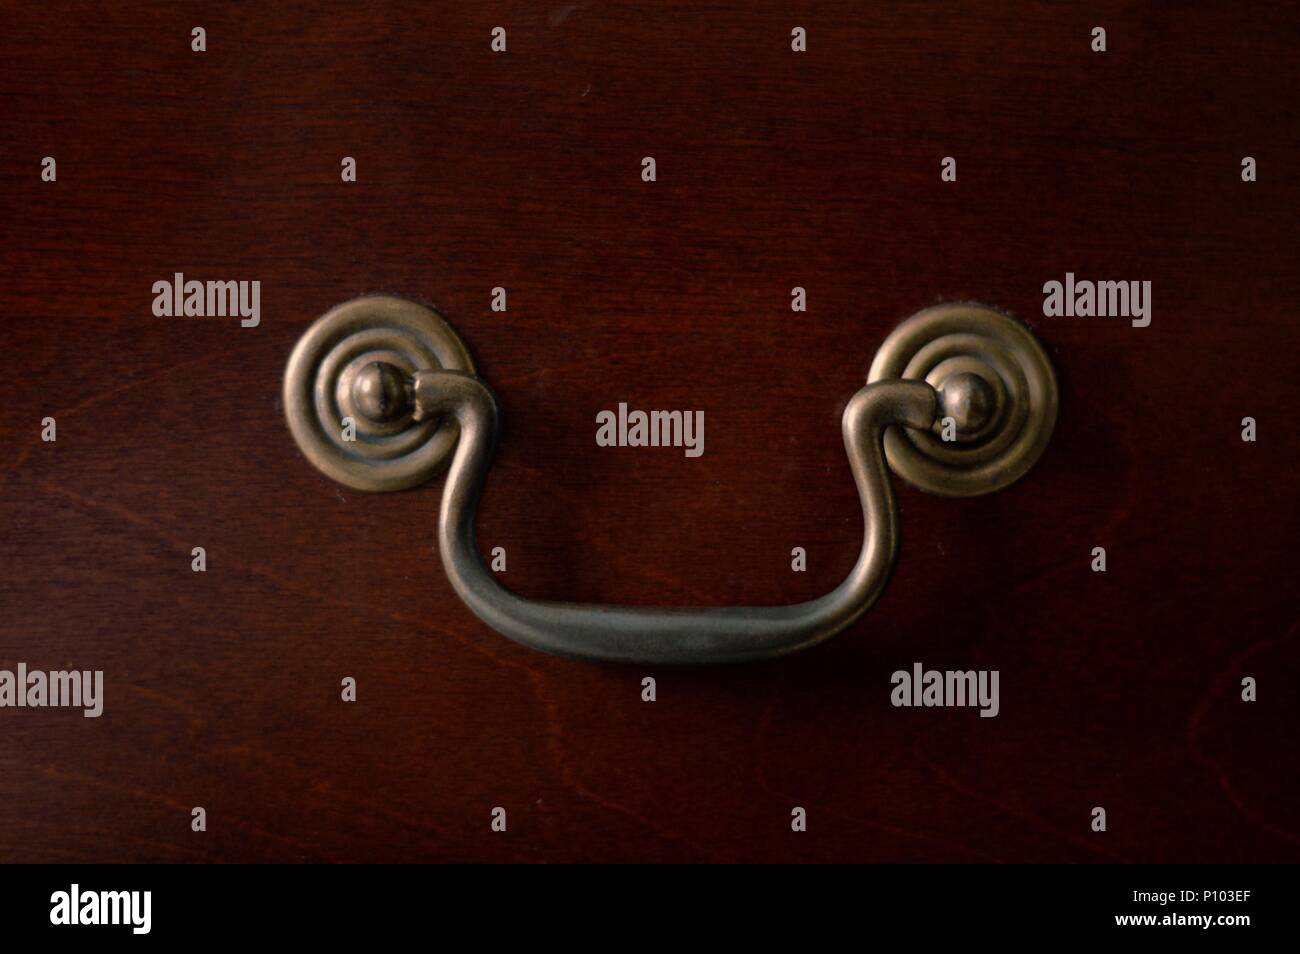 Antique furniture handle - Stock Image